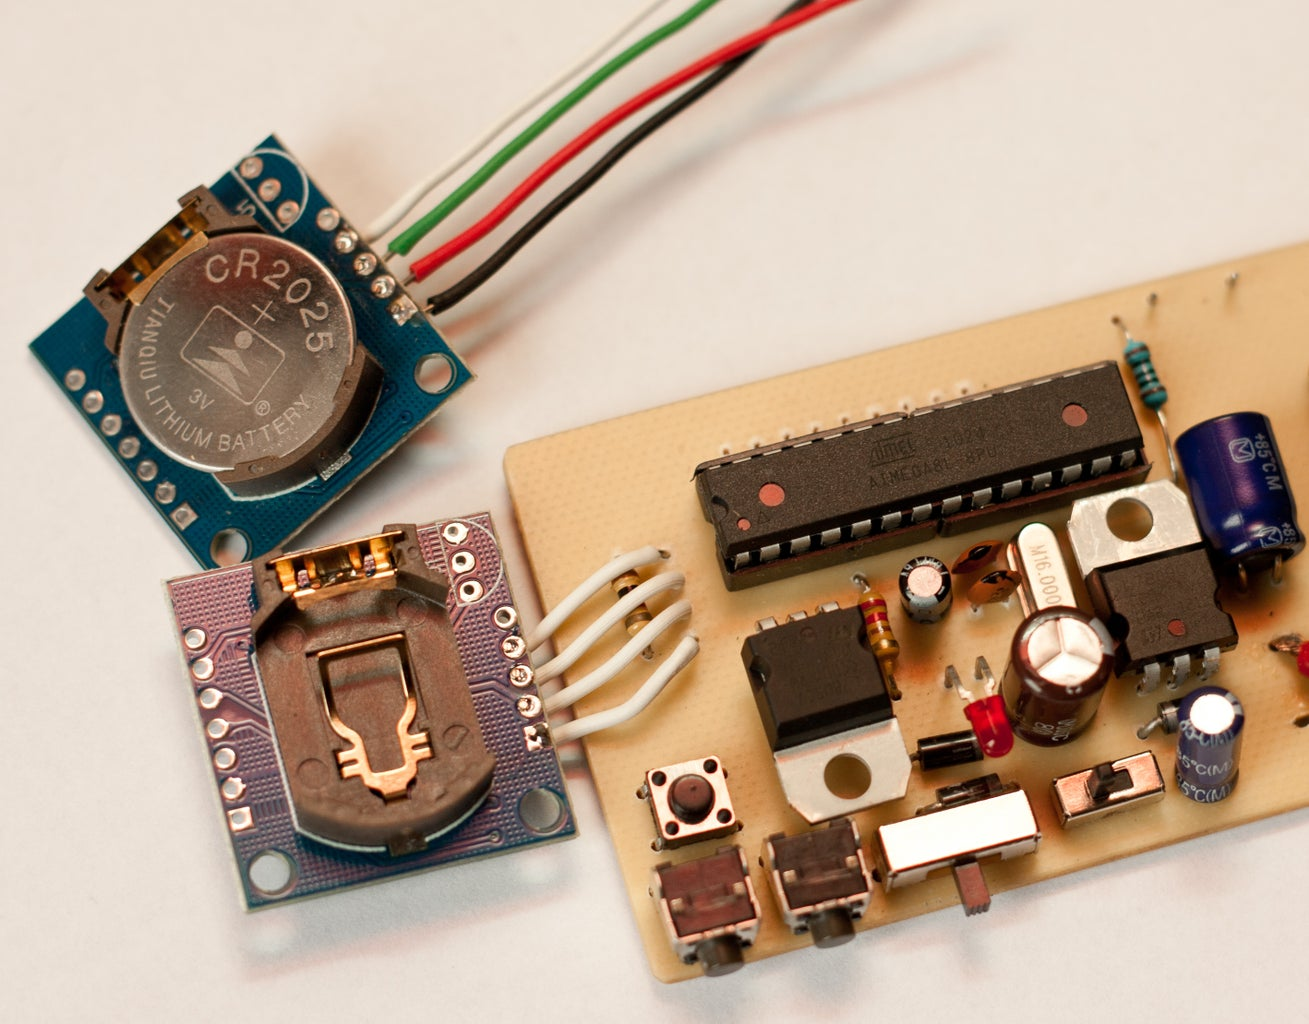 RTC Module and Automatic Lighting